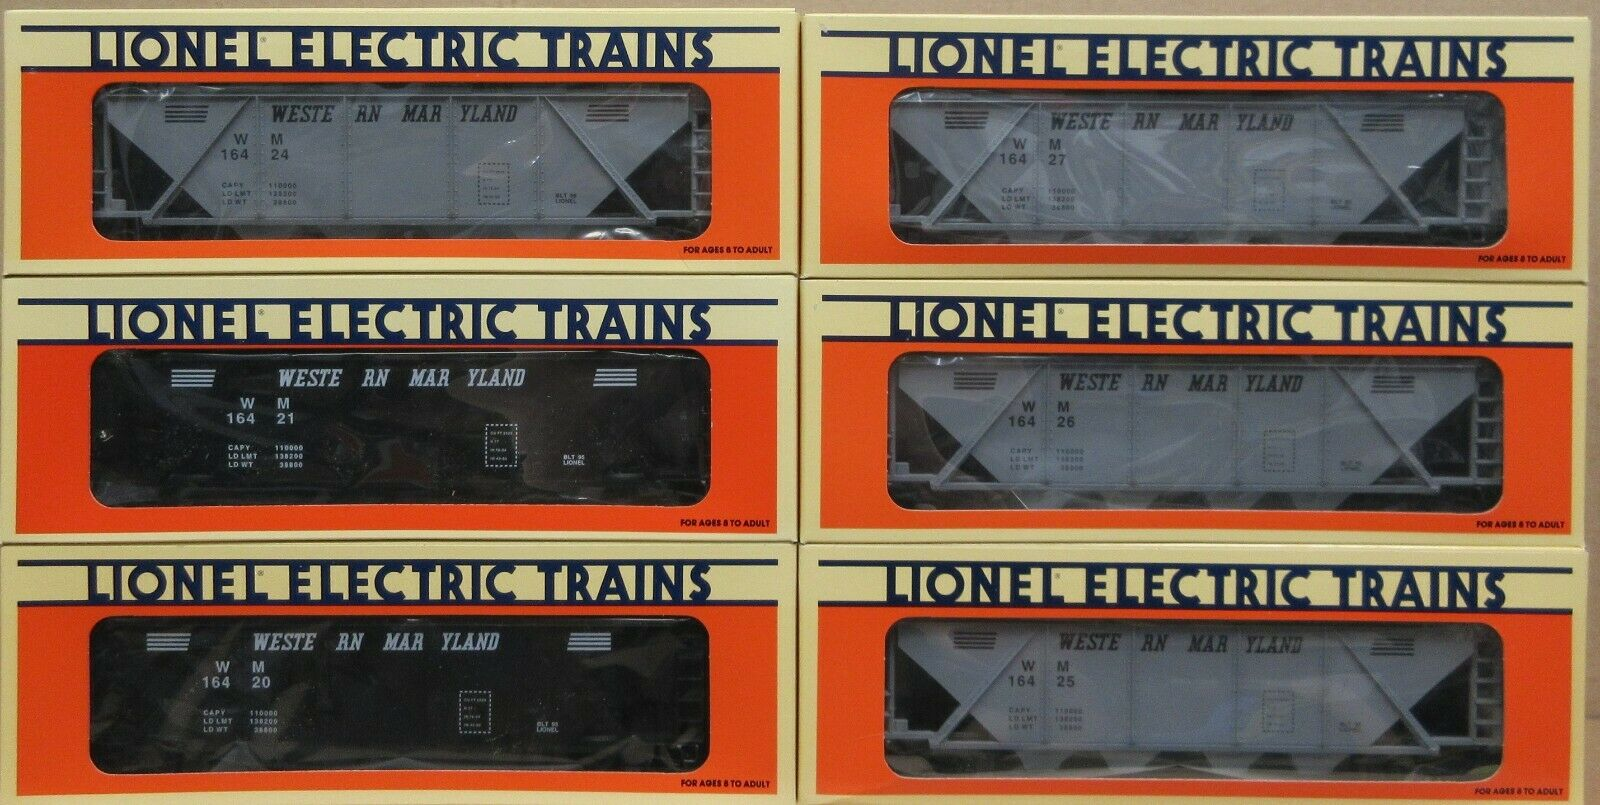 Lionel 6164202124252627 Maryle occidentale Hopper AUTO 6Pack oGauge Nuovo in Scatola